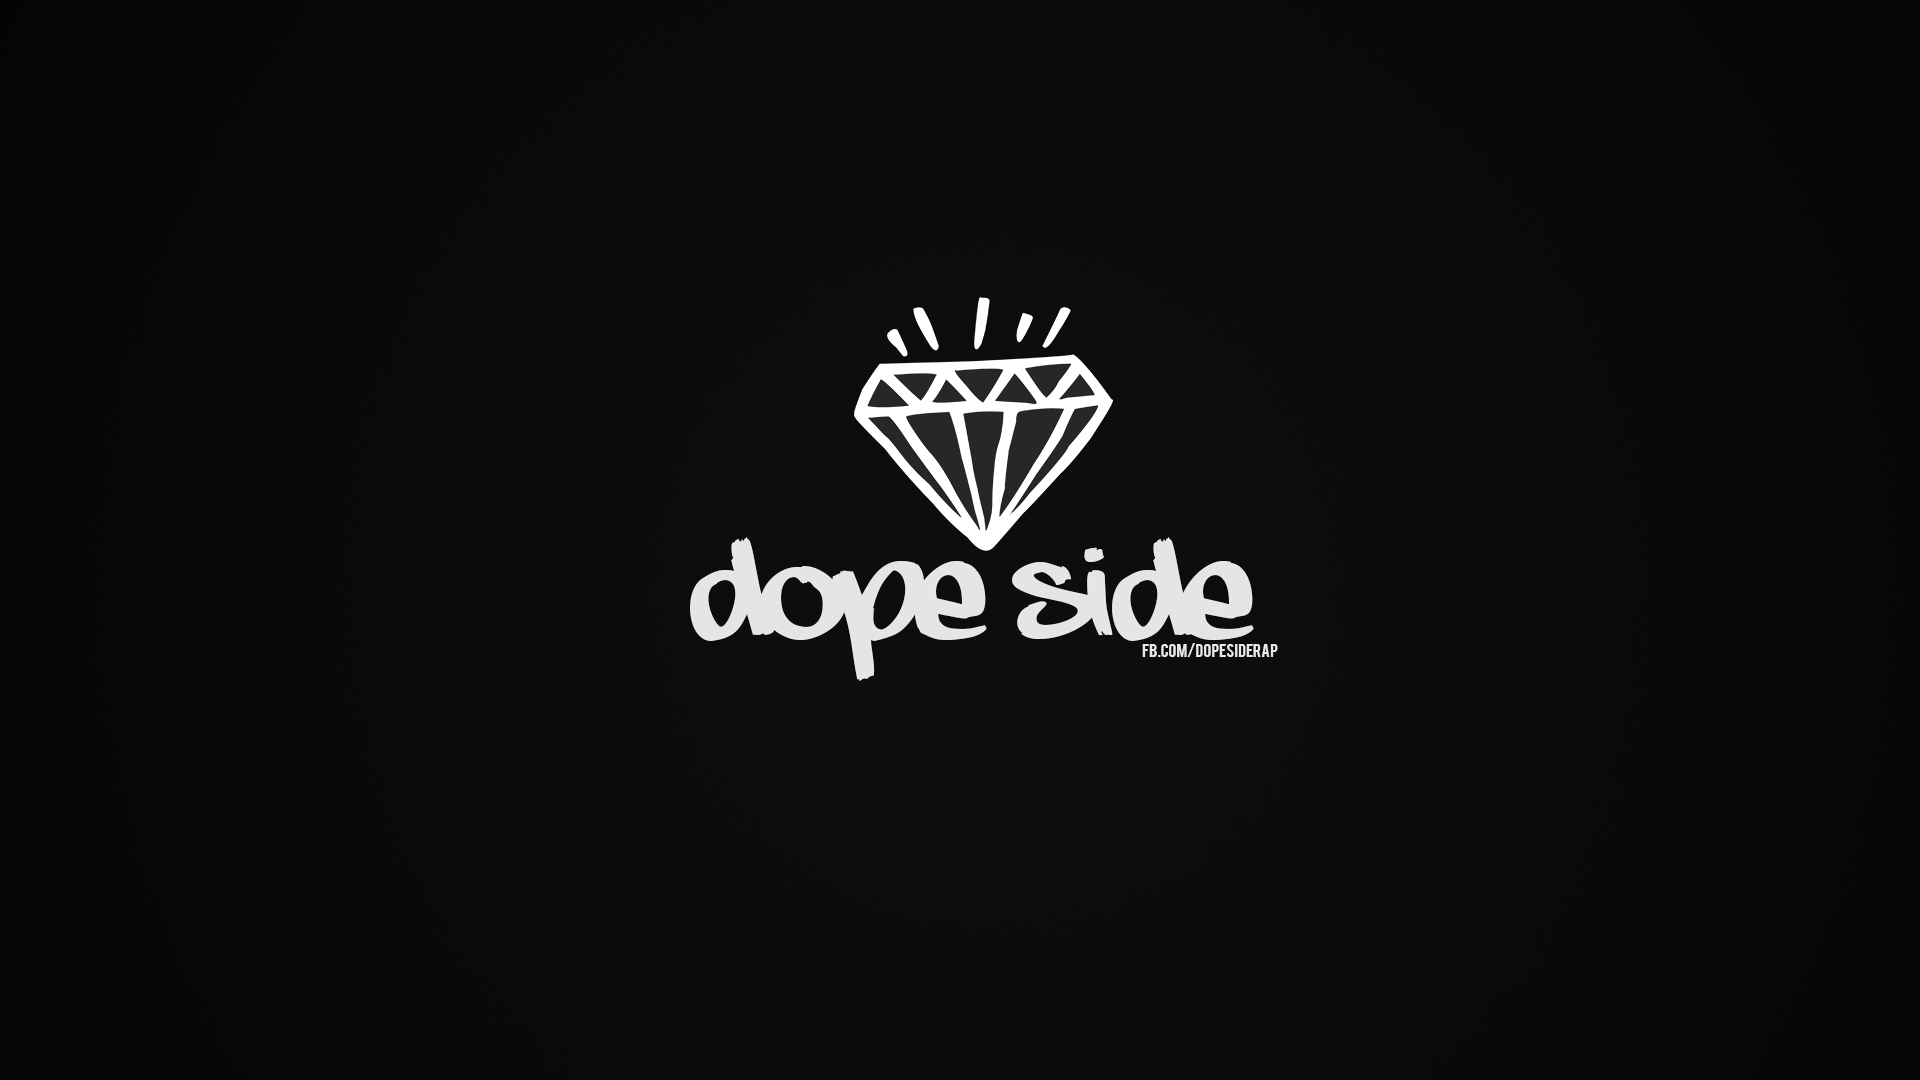 DOPE WALLPAPERS FREE Wallpapers Background images   hippowallpapers 1920x1080